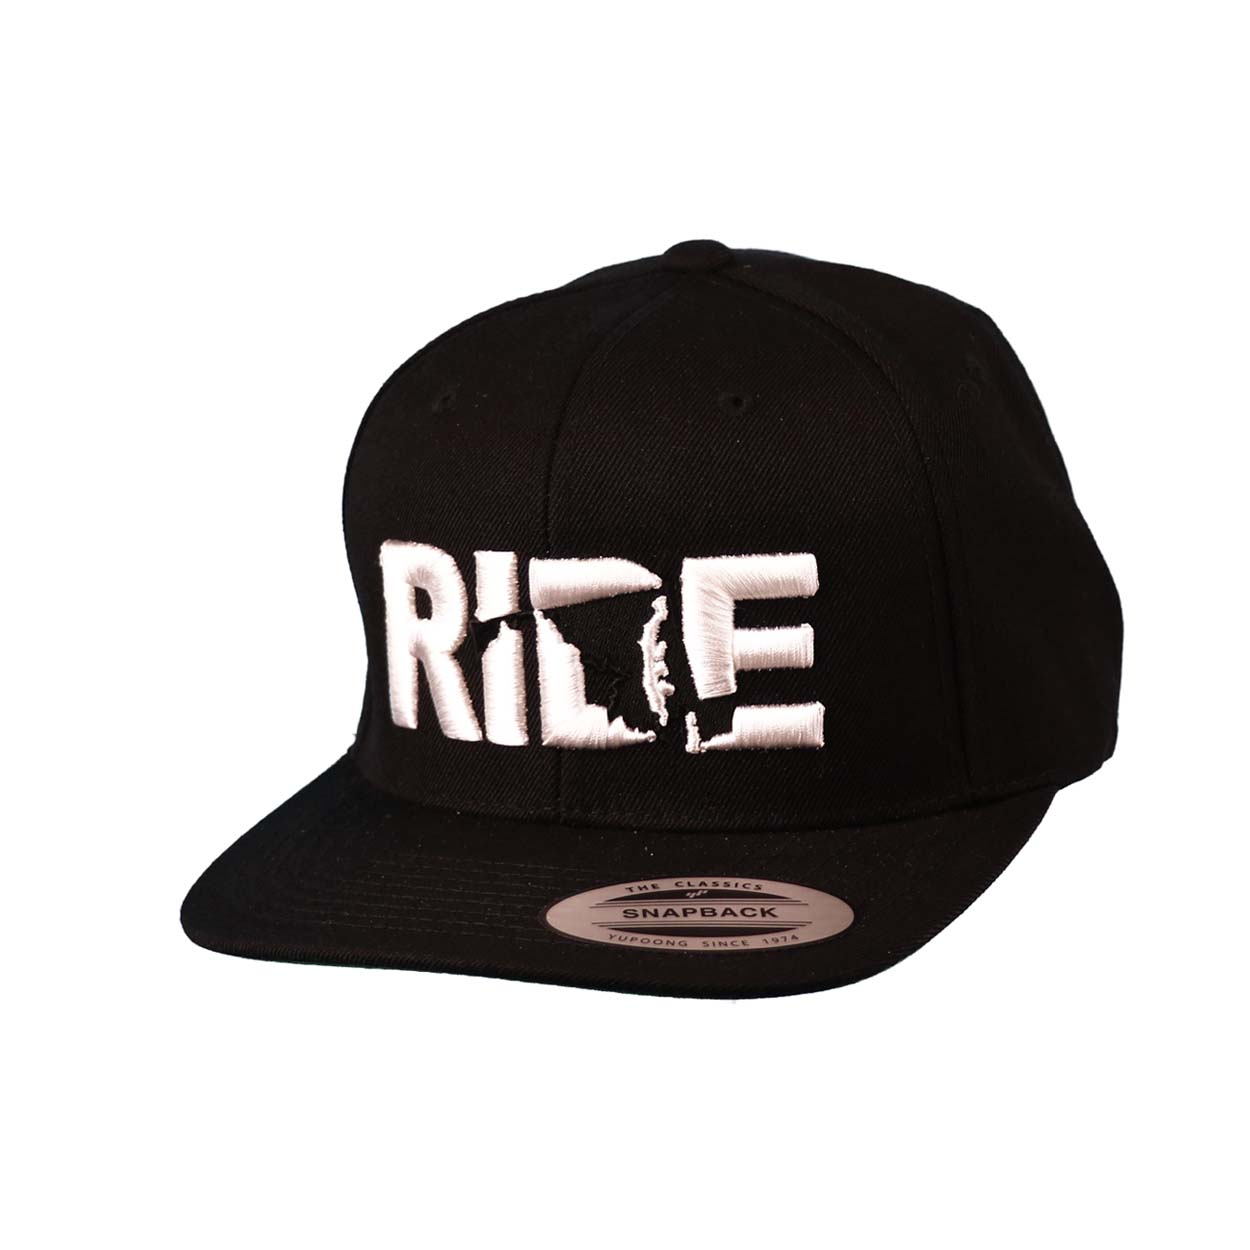 Ride Maryland Classic Embroidered  Snapback Flat Brim Hat Black/White